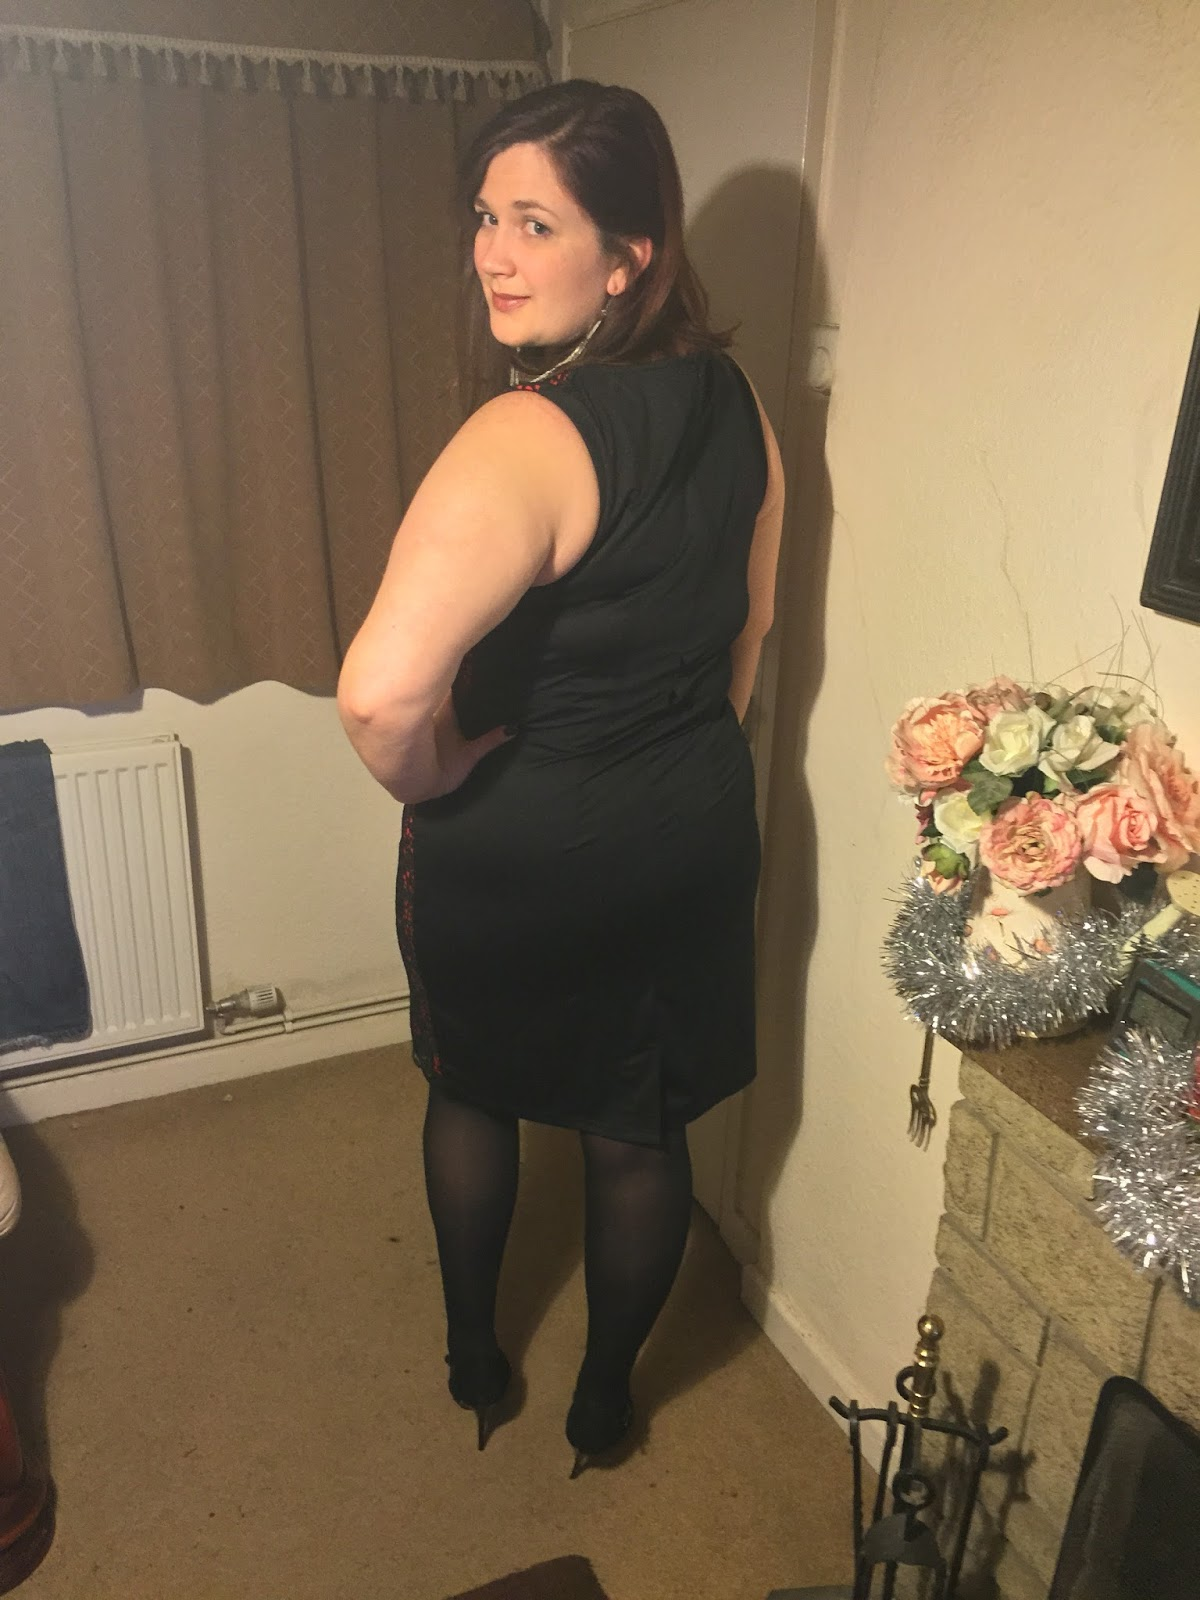 Plus Size Party Wear With Curvissa Charli Russon